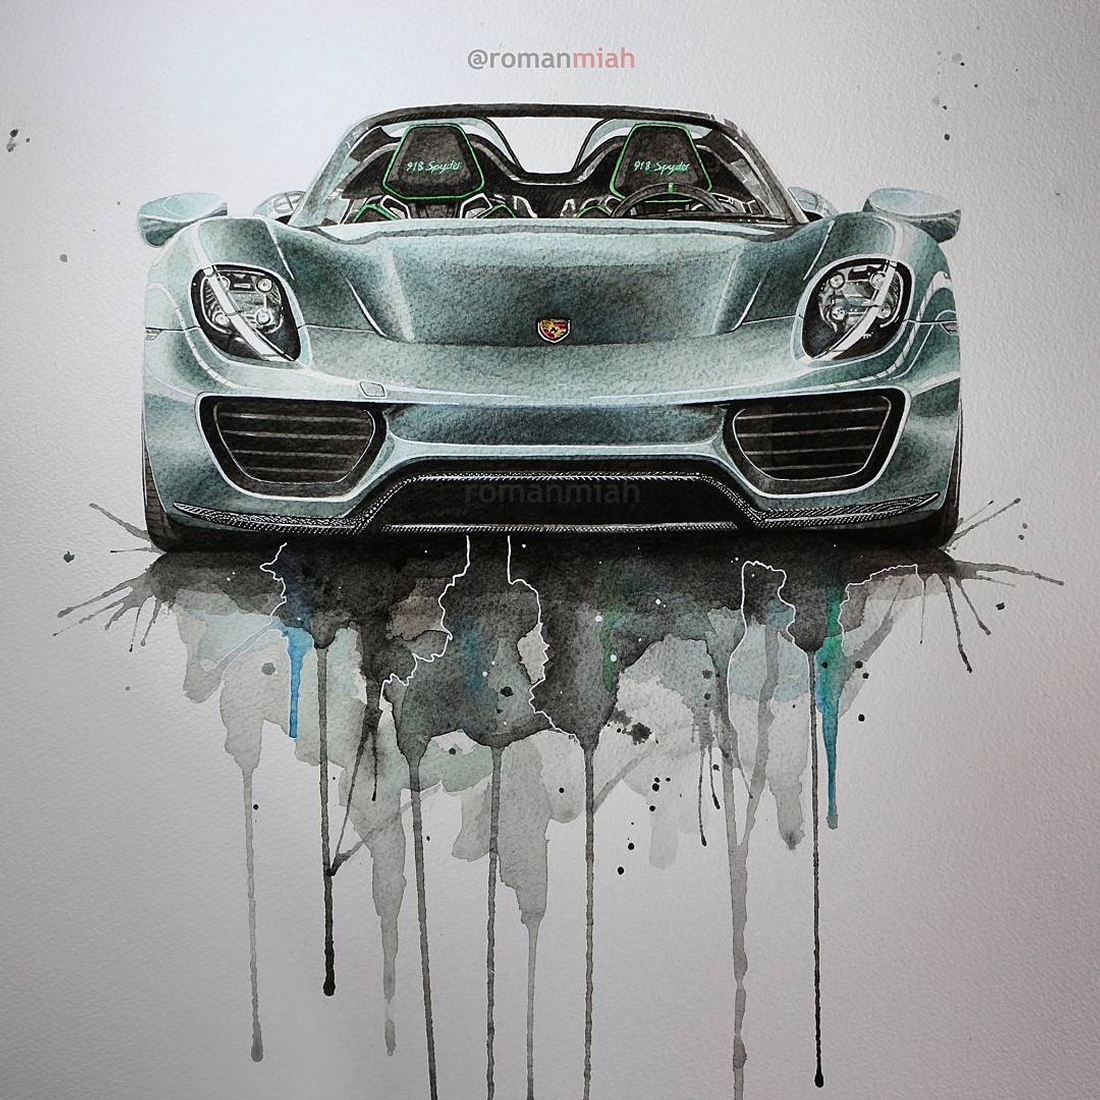 10-Porsche-918-Spyder-watercolour-Rayhan-Miah-Movie-Characters-Drawings-and-More-www-designstack-co